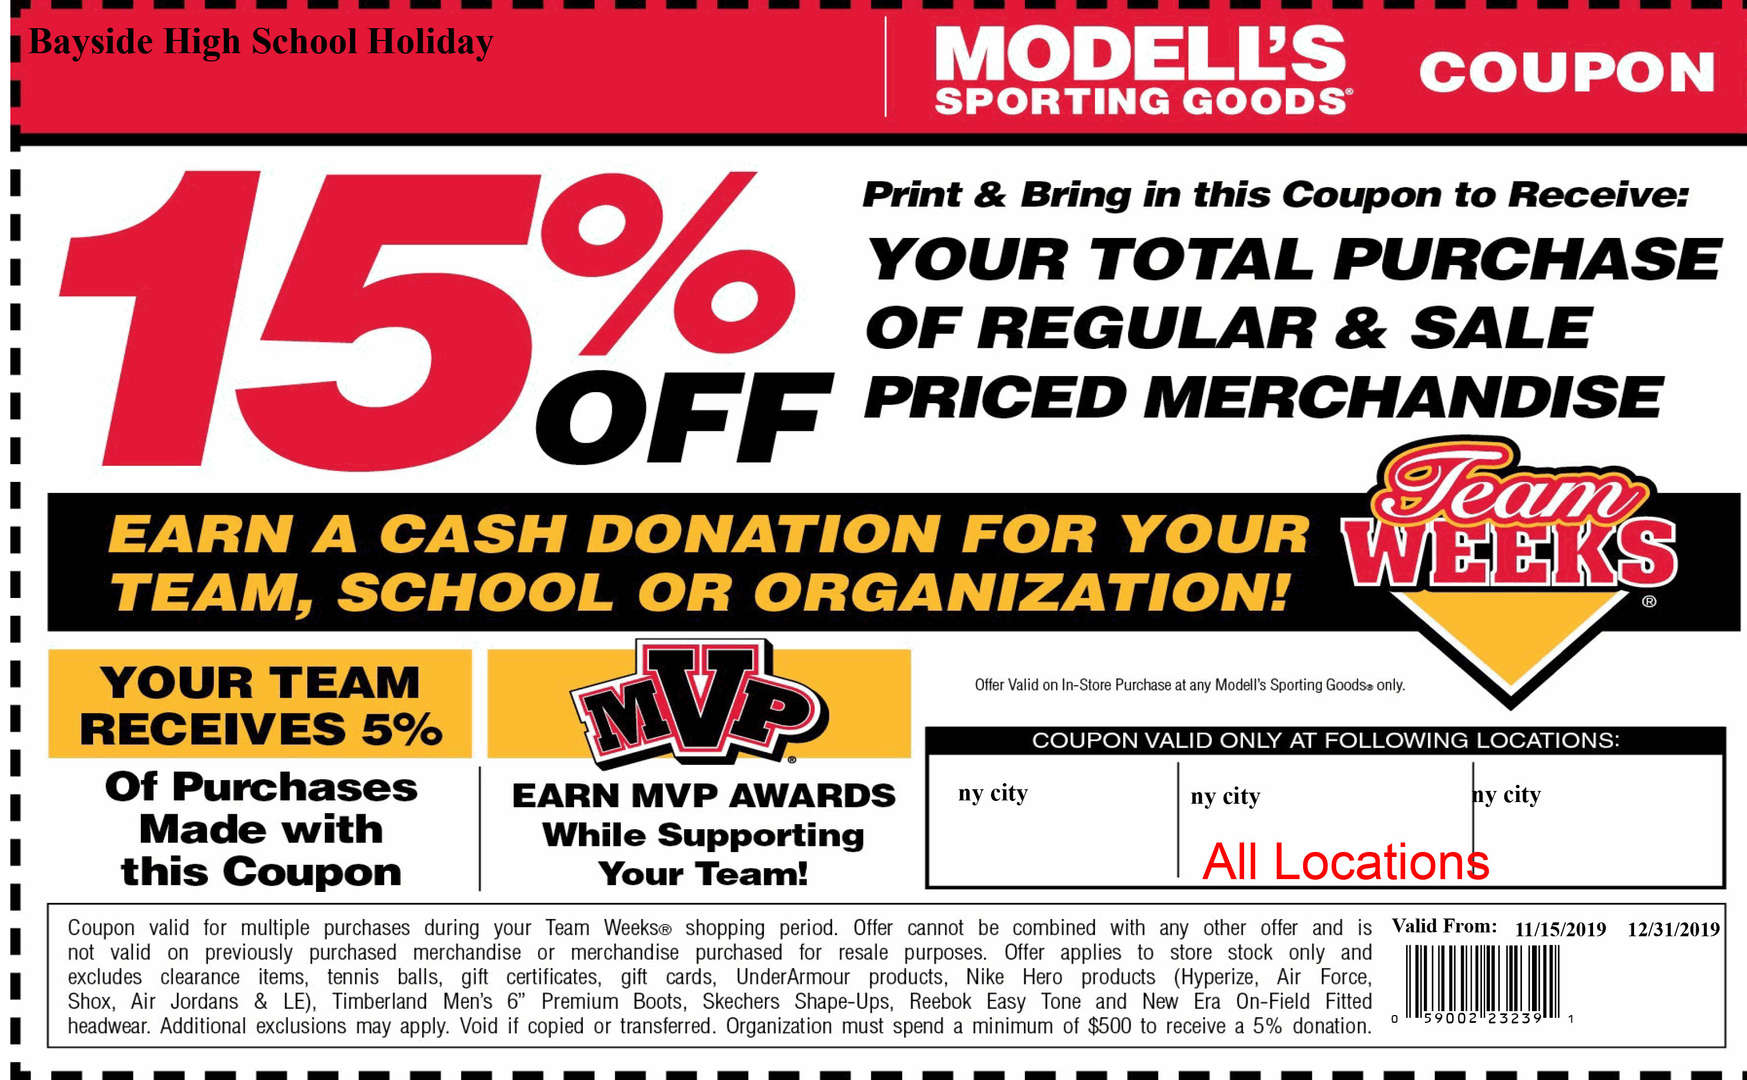 Modell's coupon